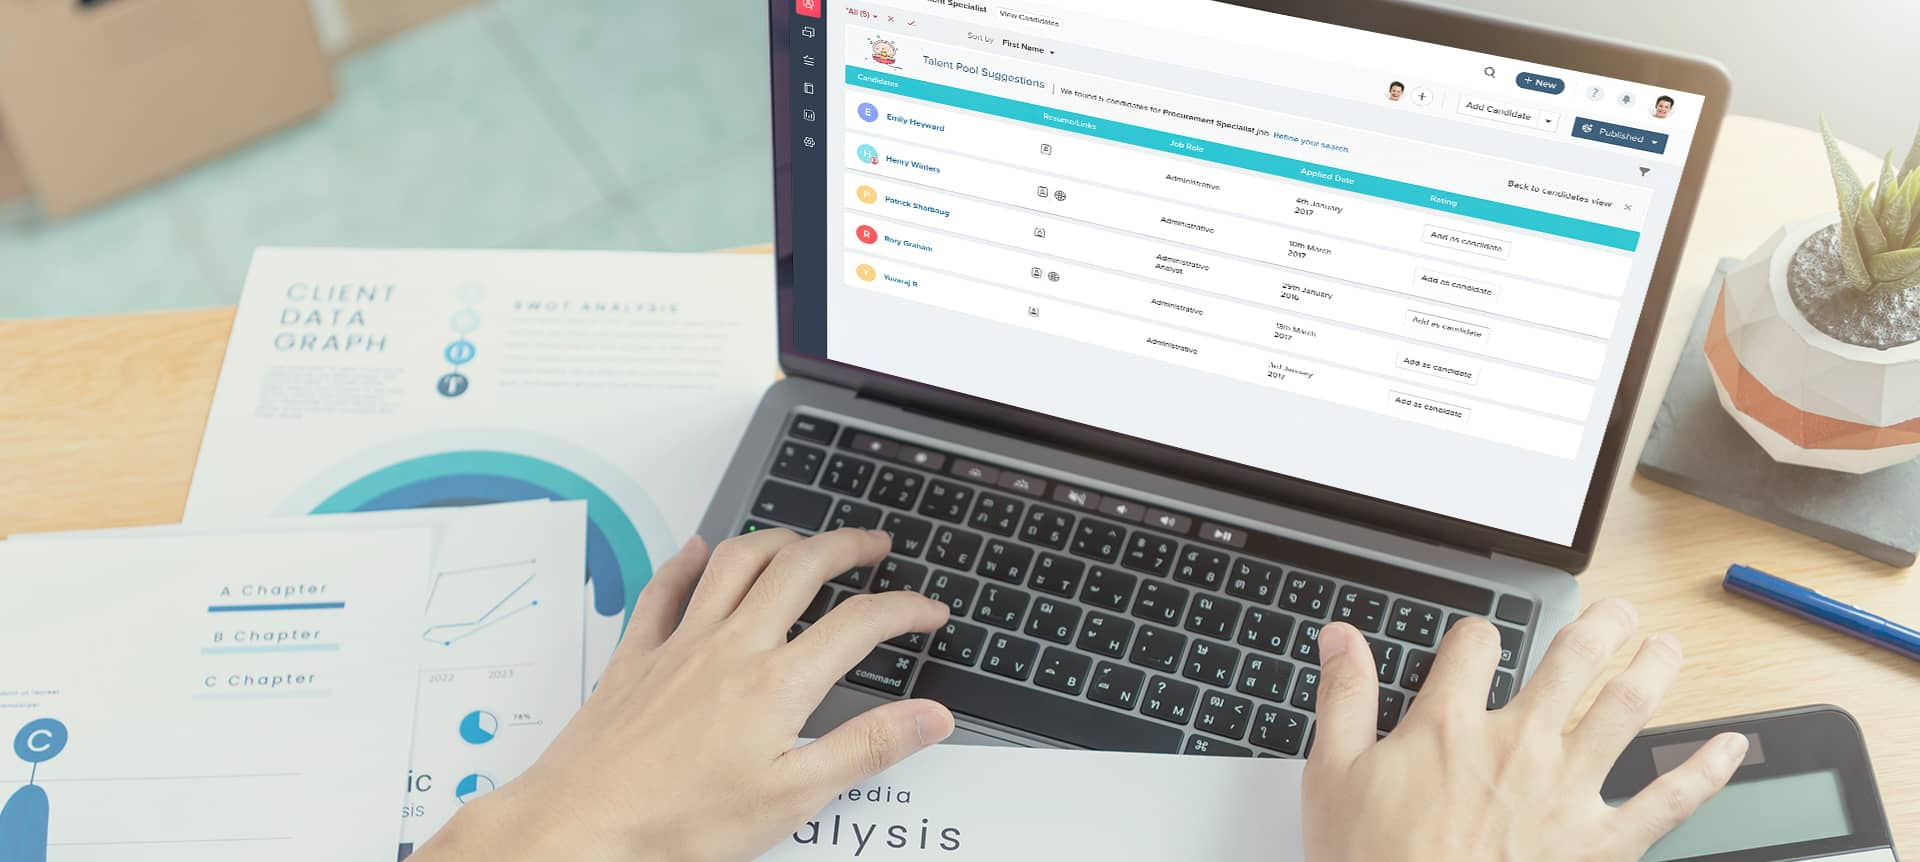 laptop showing an applicant tracking system